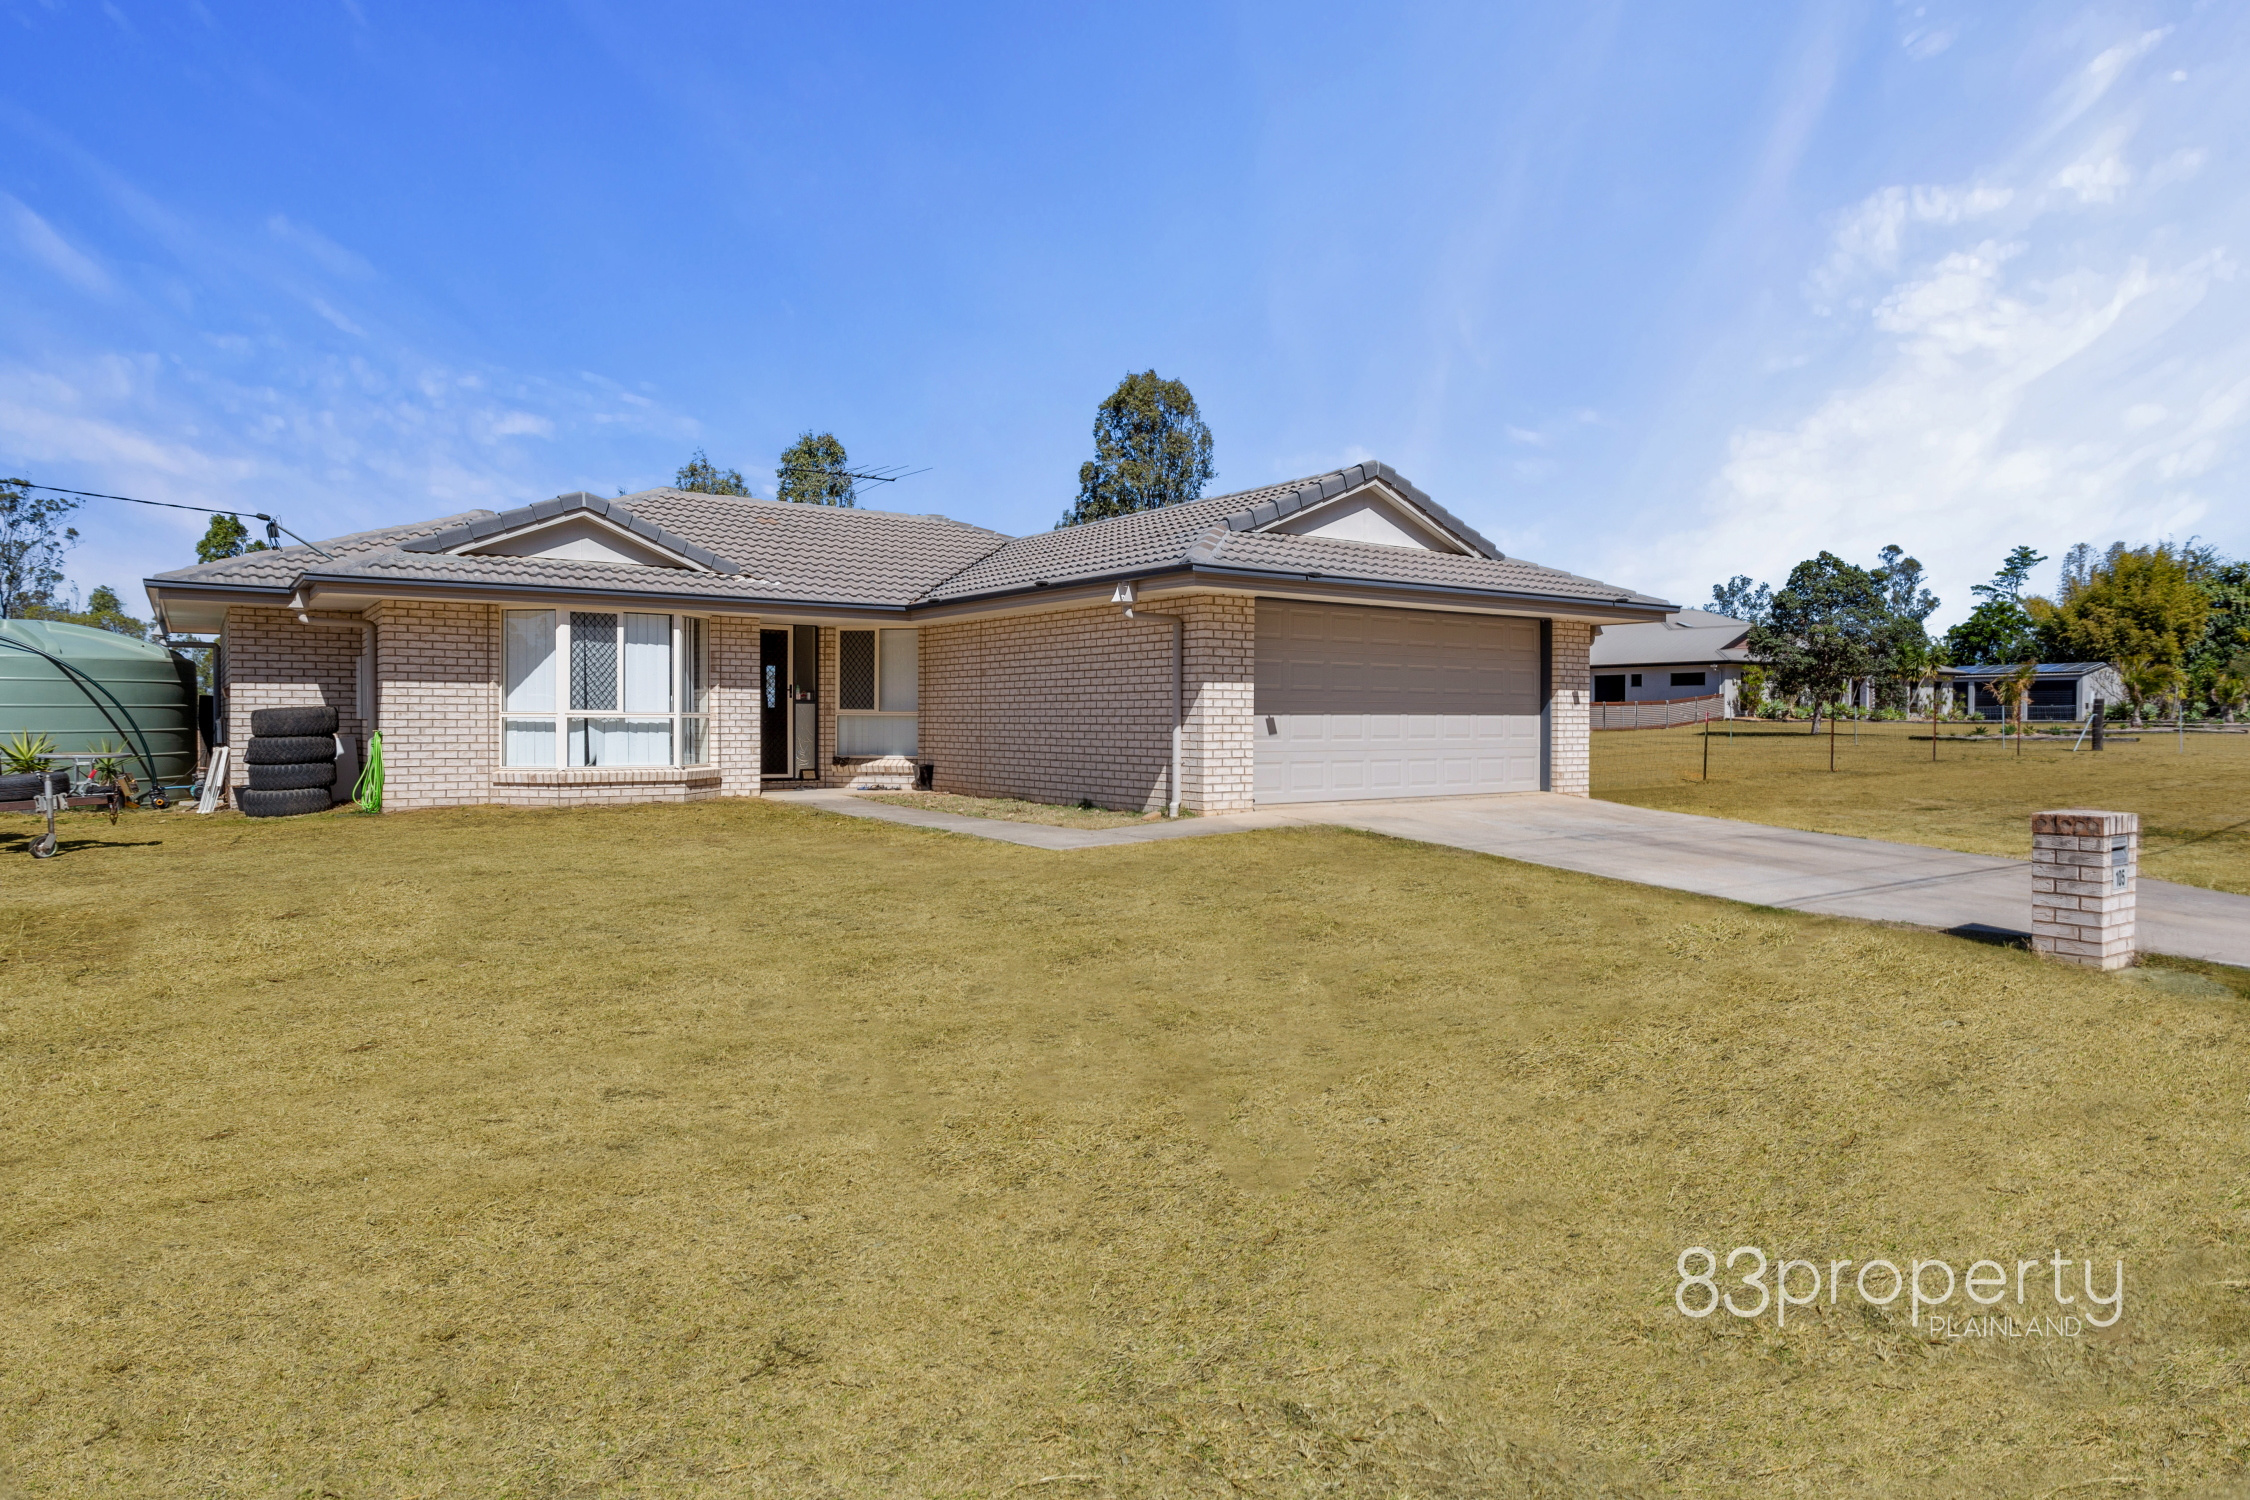 Stylish, Spacious & Immaculately Presented